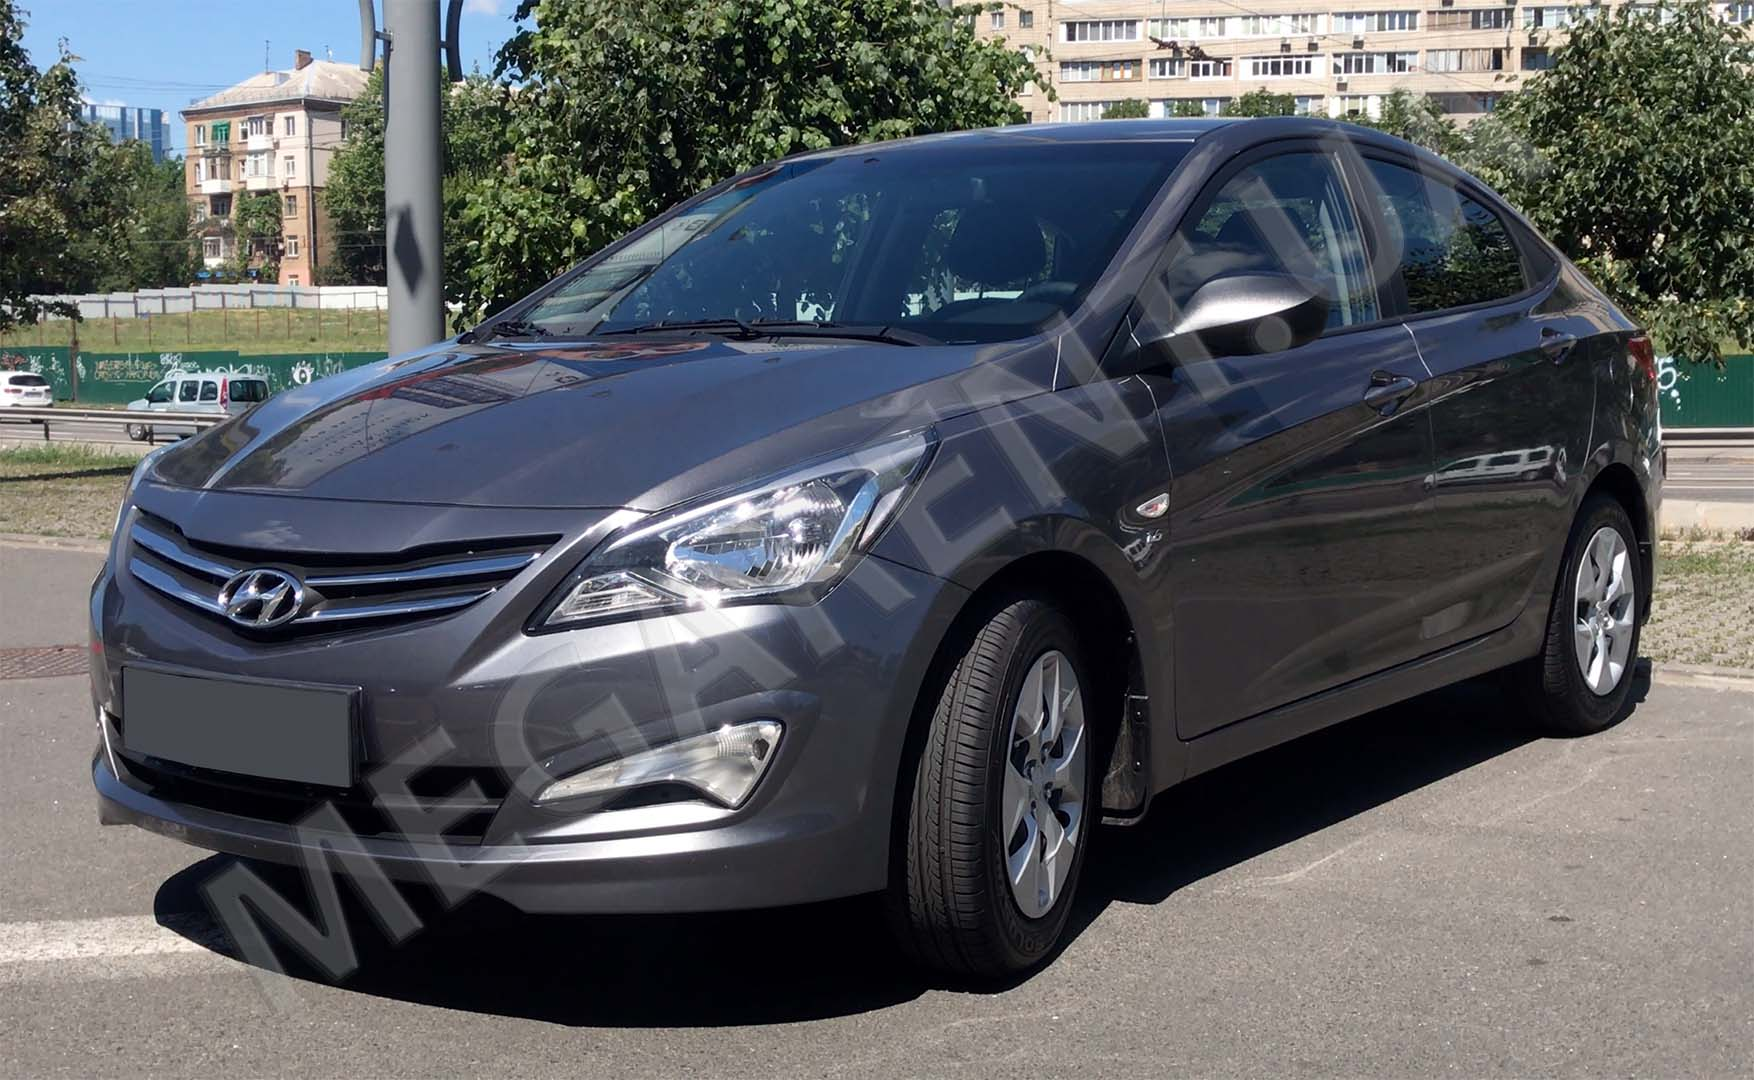 Car rental HYUNDAI SOLARIS (ACCENT) 2017 in Kiev - photo 2